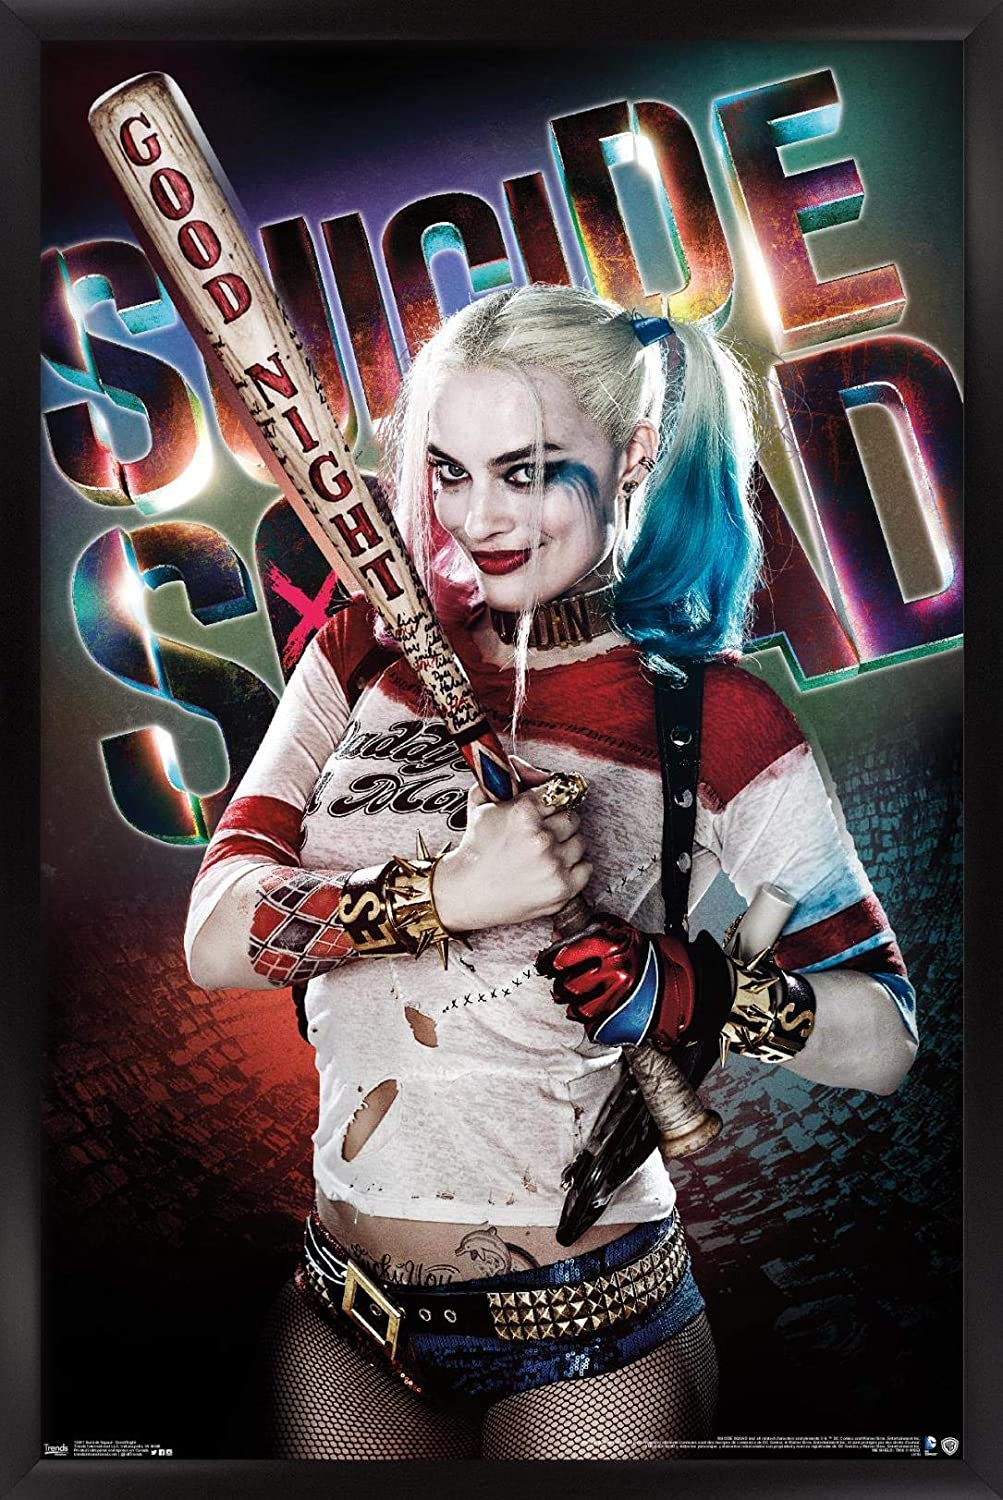 Trends International DC Comics Movie Good Al sold out. Nigh Classic Squad - Suicide